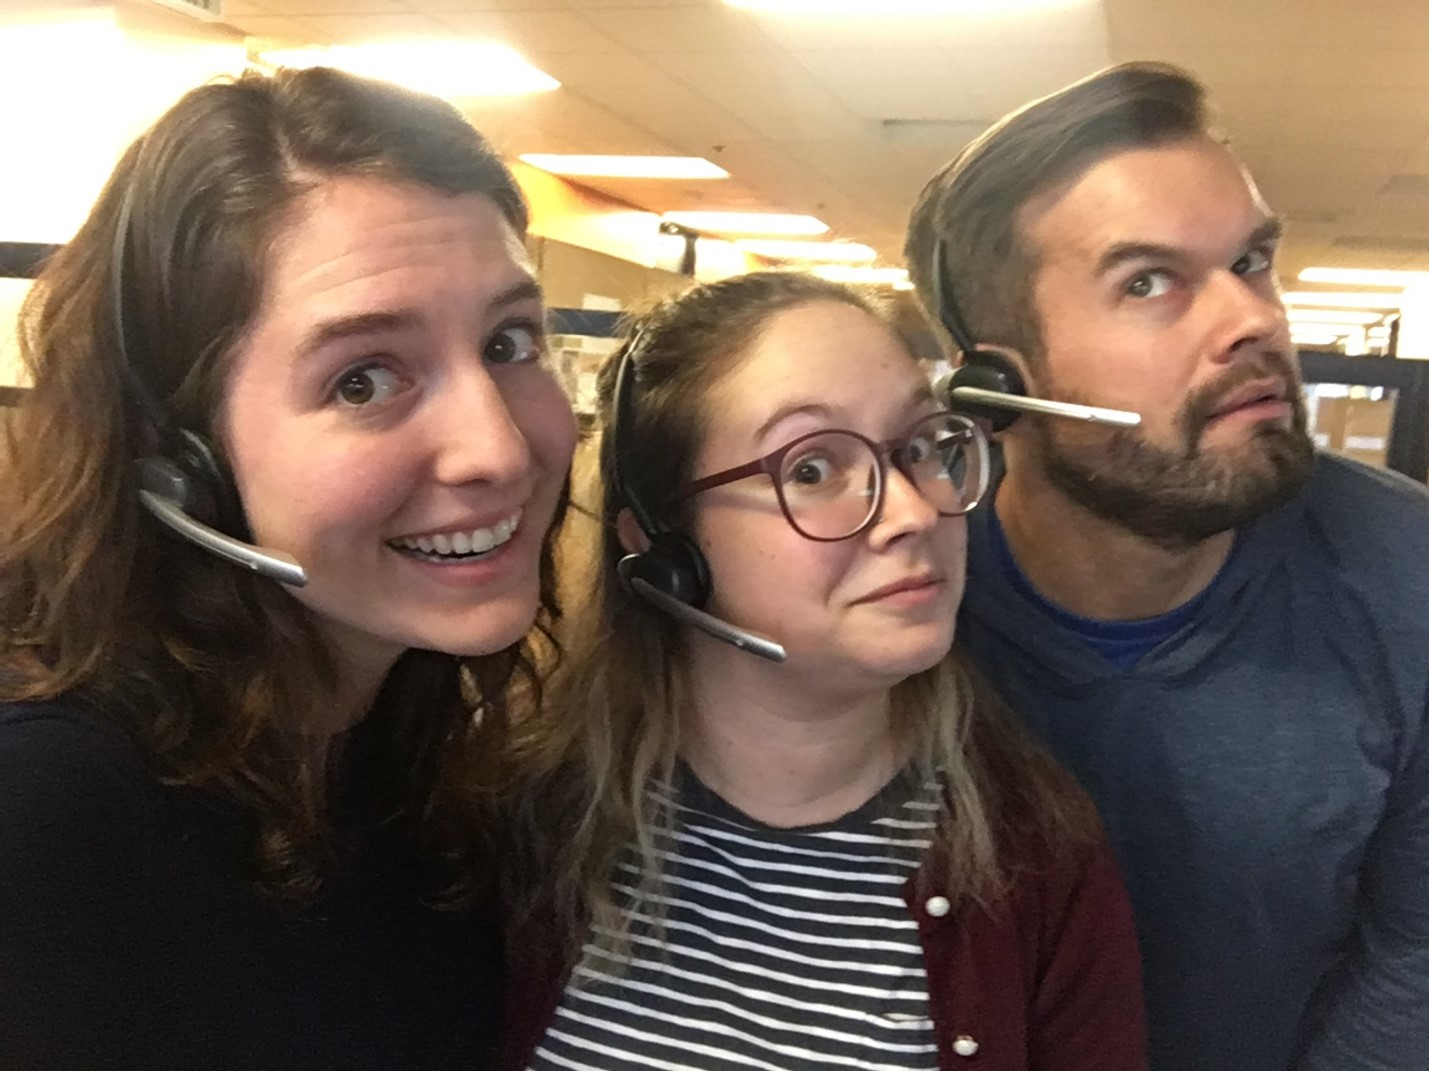 Clara Olson with co-workers wearing headsets and smiling